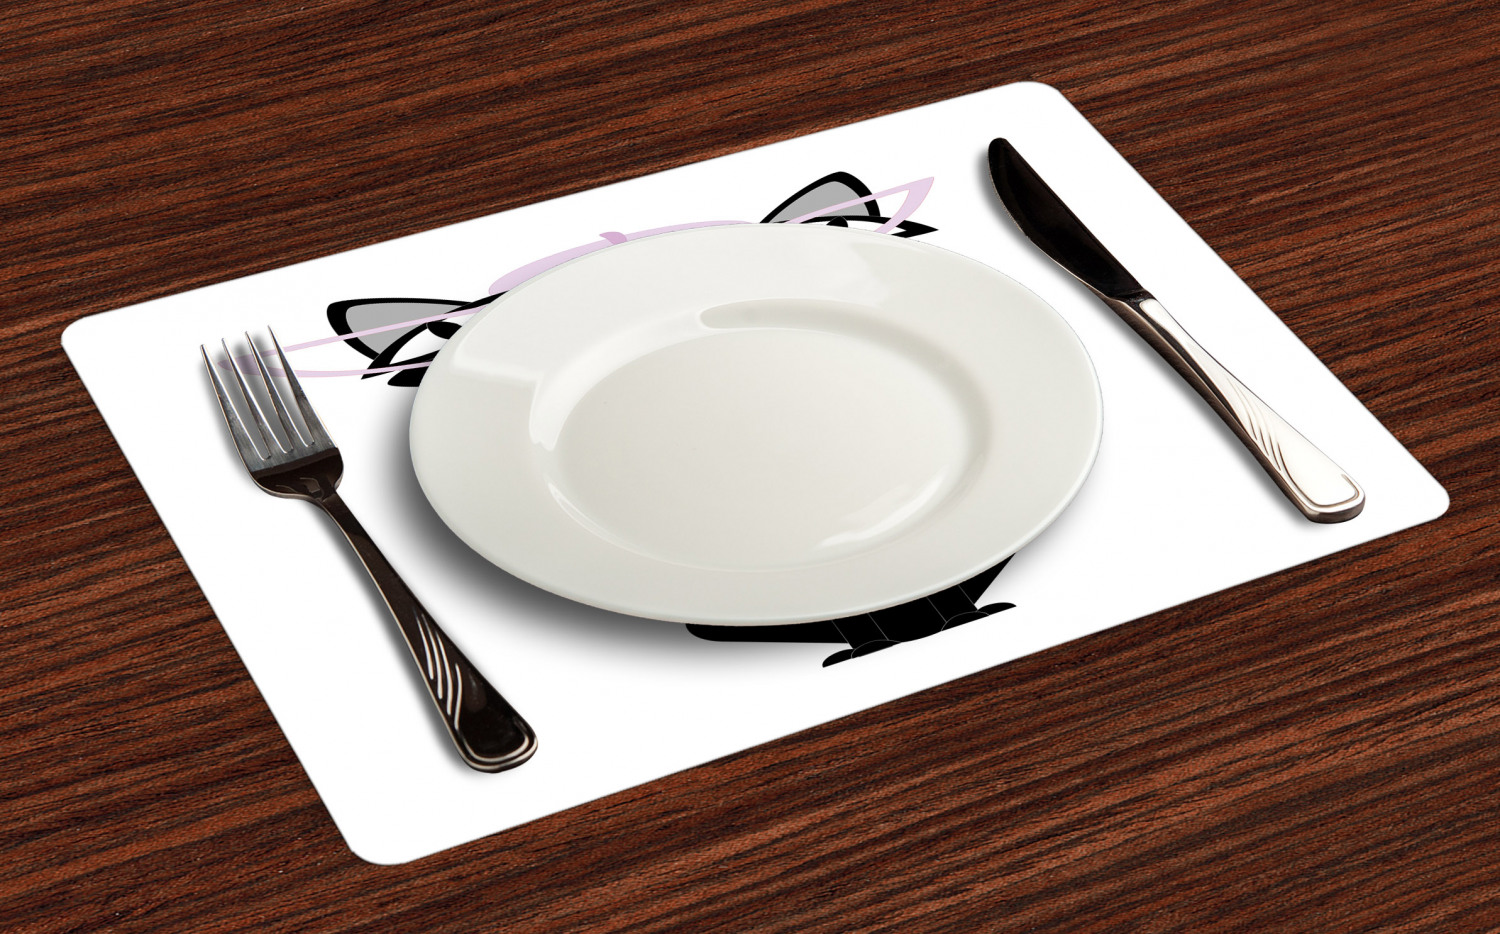 Ambesonne-Fabric-Place-Mats-Set-of-4-Placemats-for-Dining-Room-and-Kitchen-Table thumbnail 85